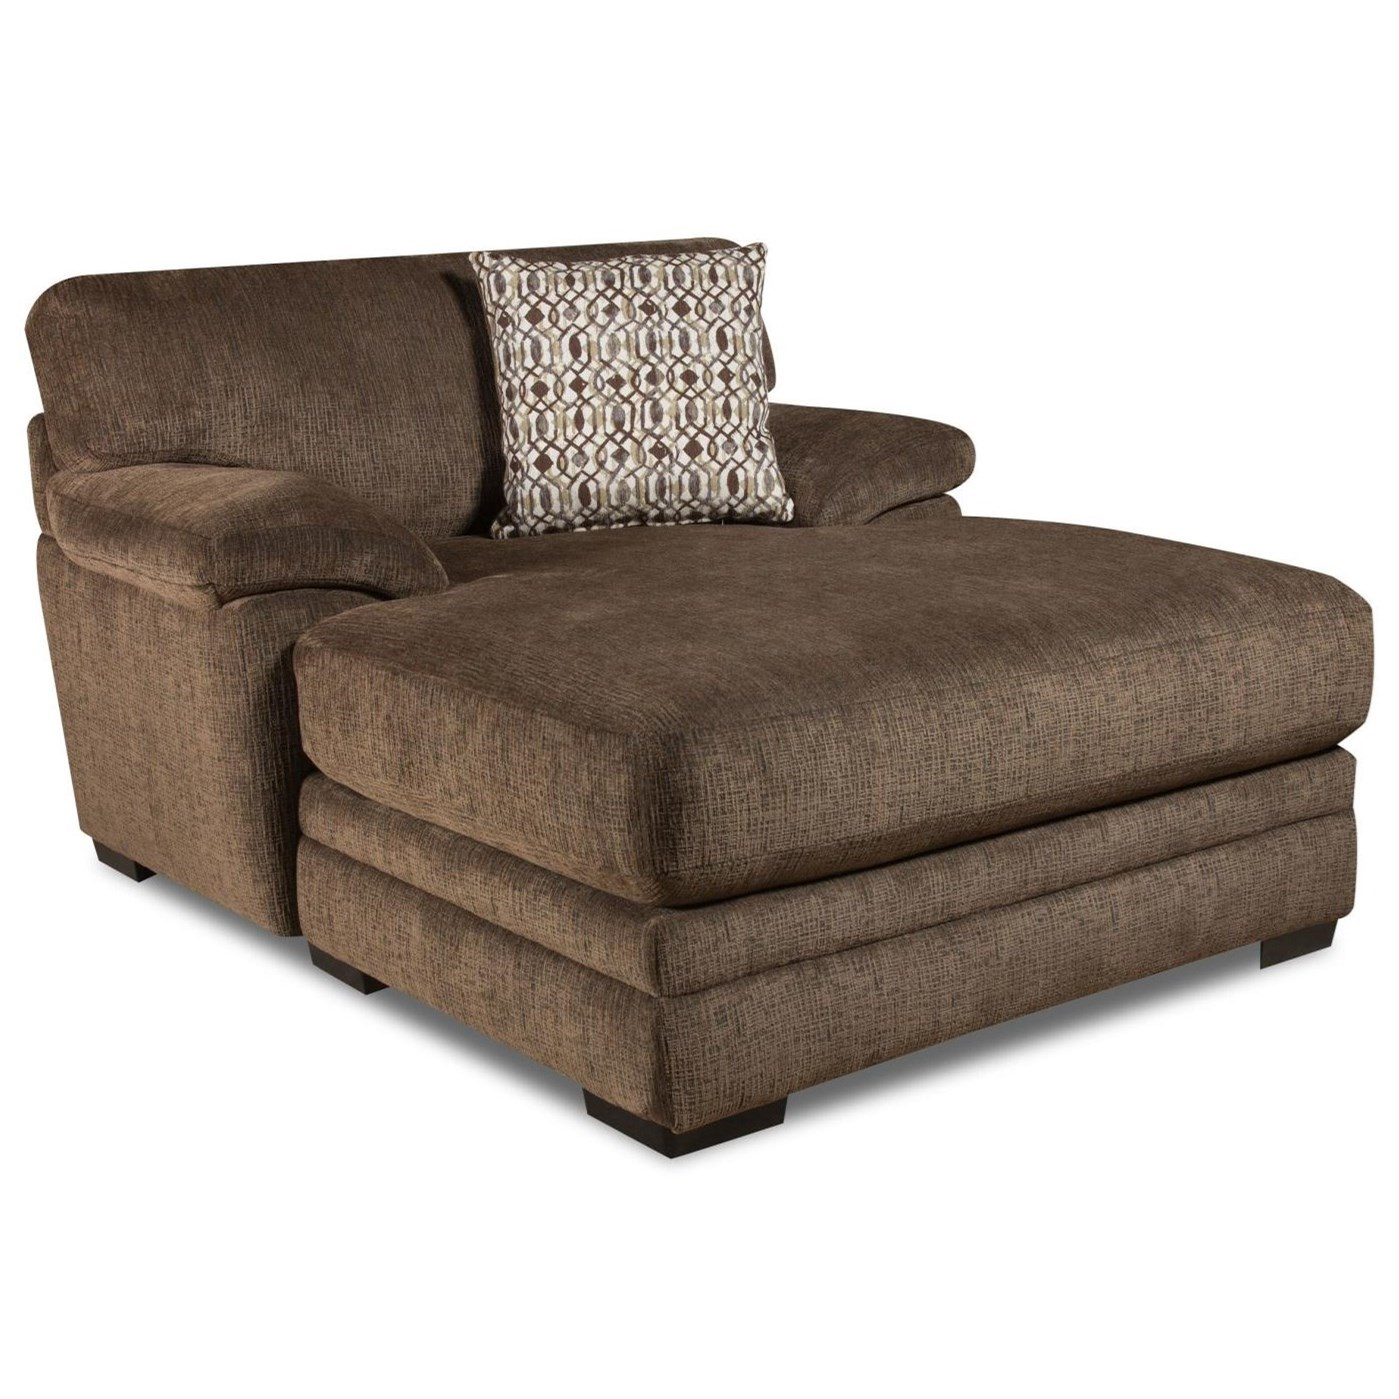 8662 2 Arm Chaise by Albany at A1 Furniture & Mattress